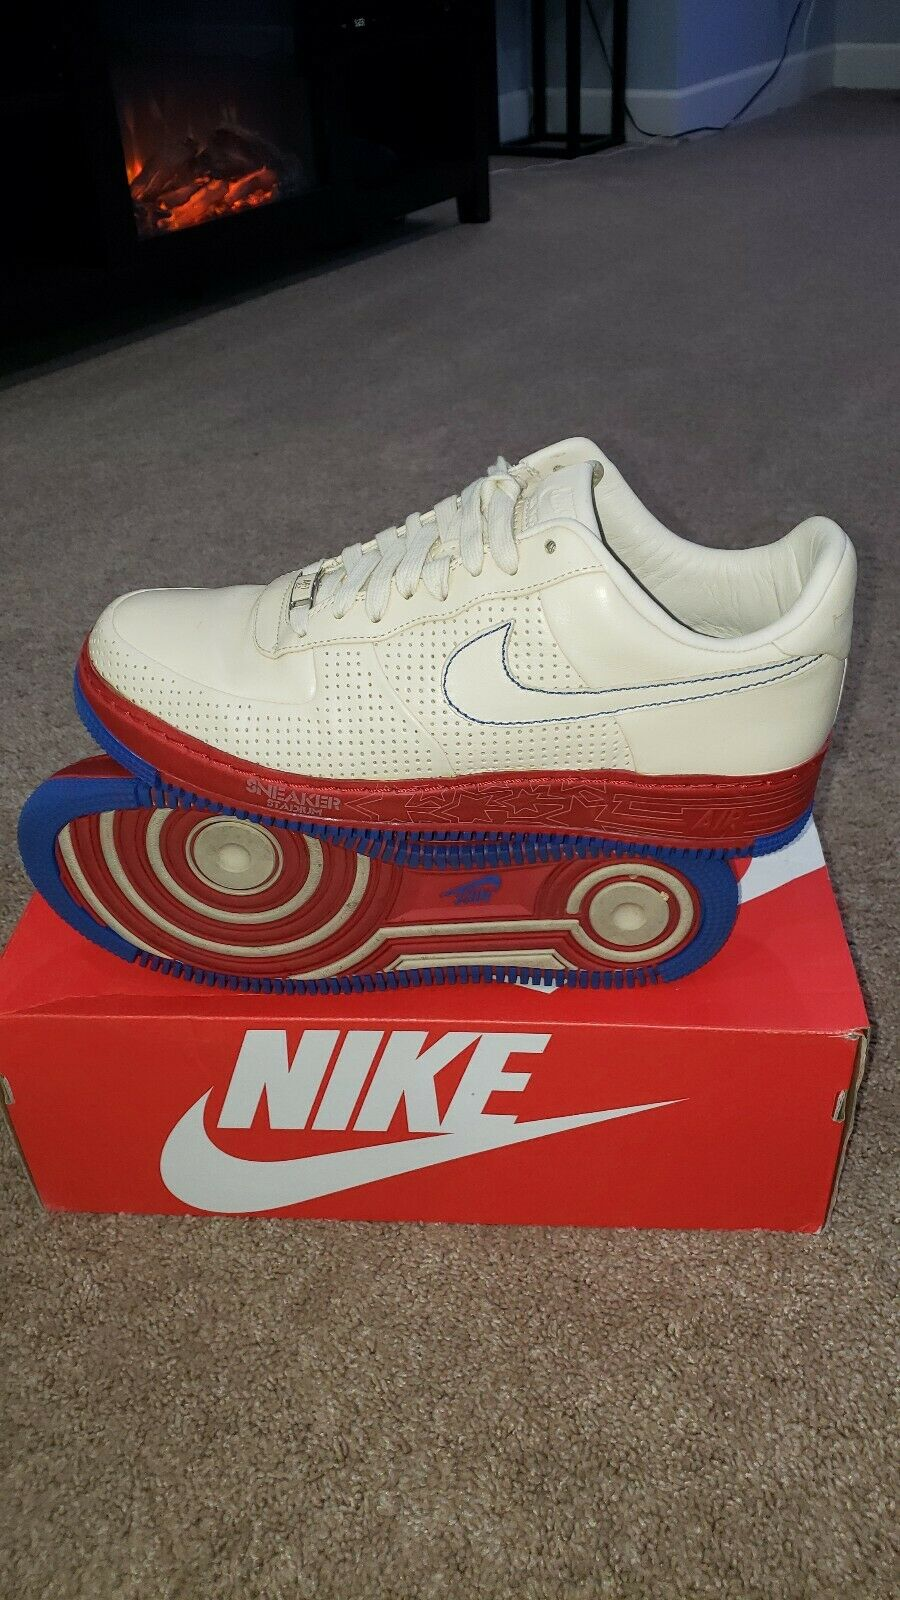 NIKE AIR FORCE 1 I AF1 SPRM MCO (SNEAKER STADIUM Philly) RARE 316077-221 SZ 10.5